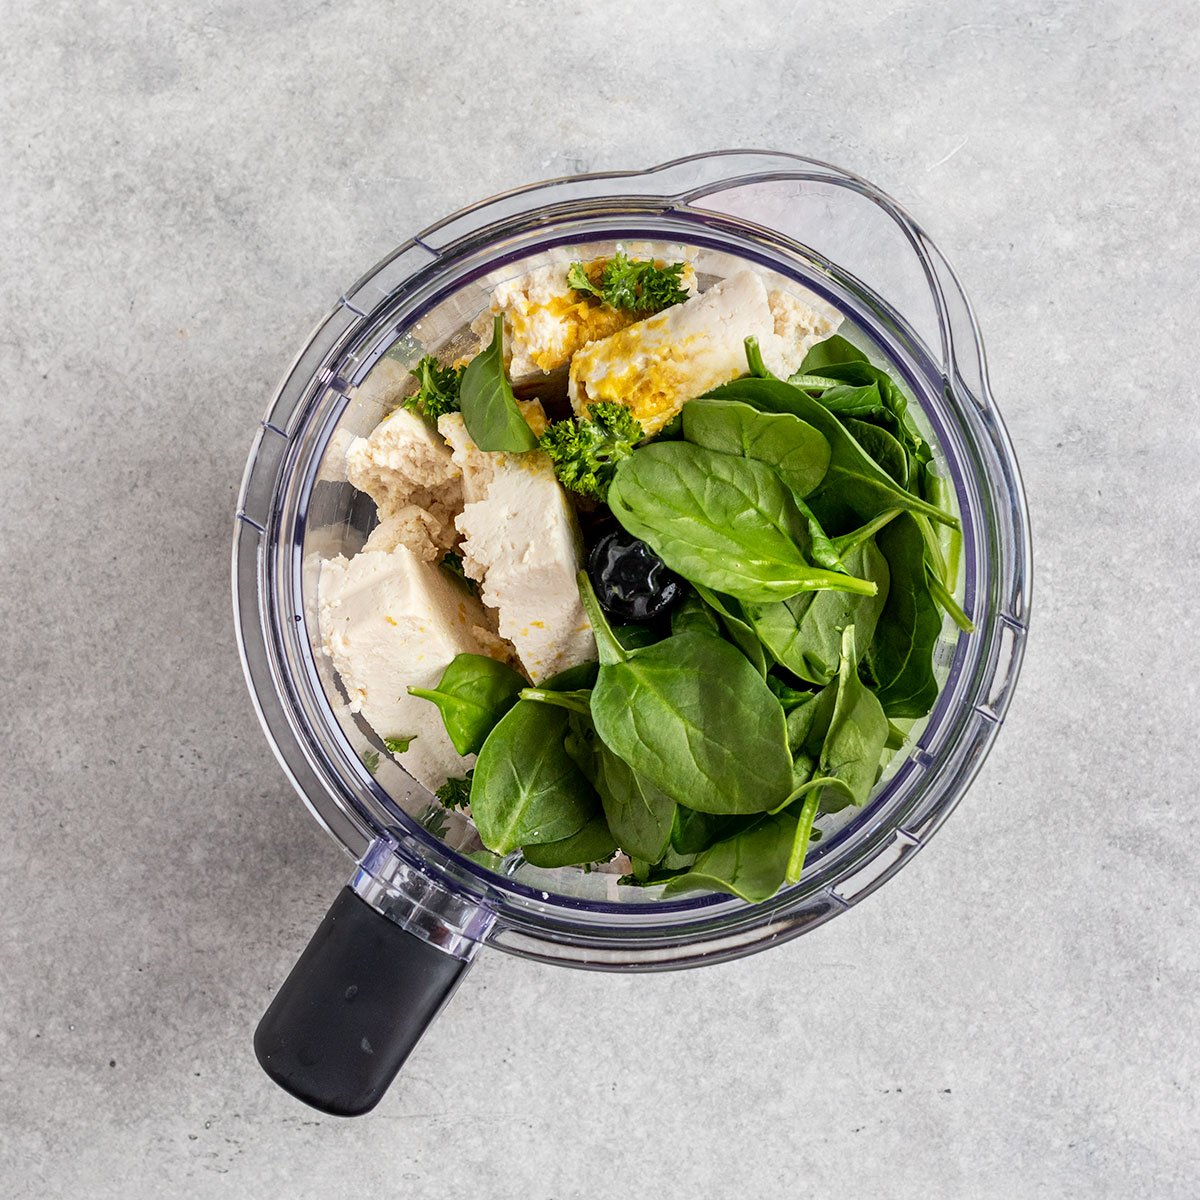 ingredients in blender including spinach, tofu, nutritional yeast, spices, and lemon juice